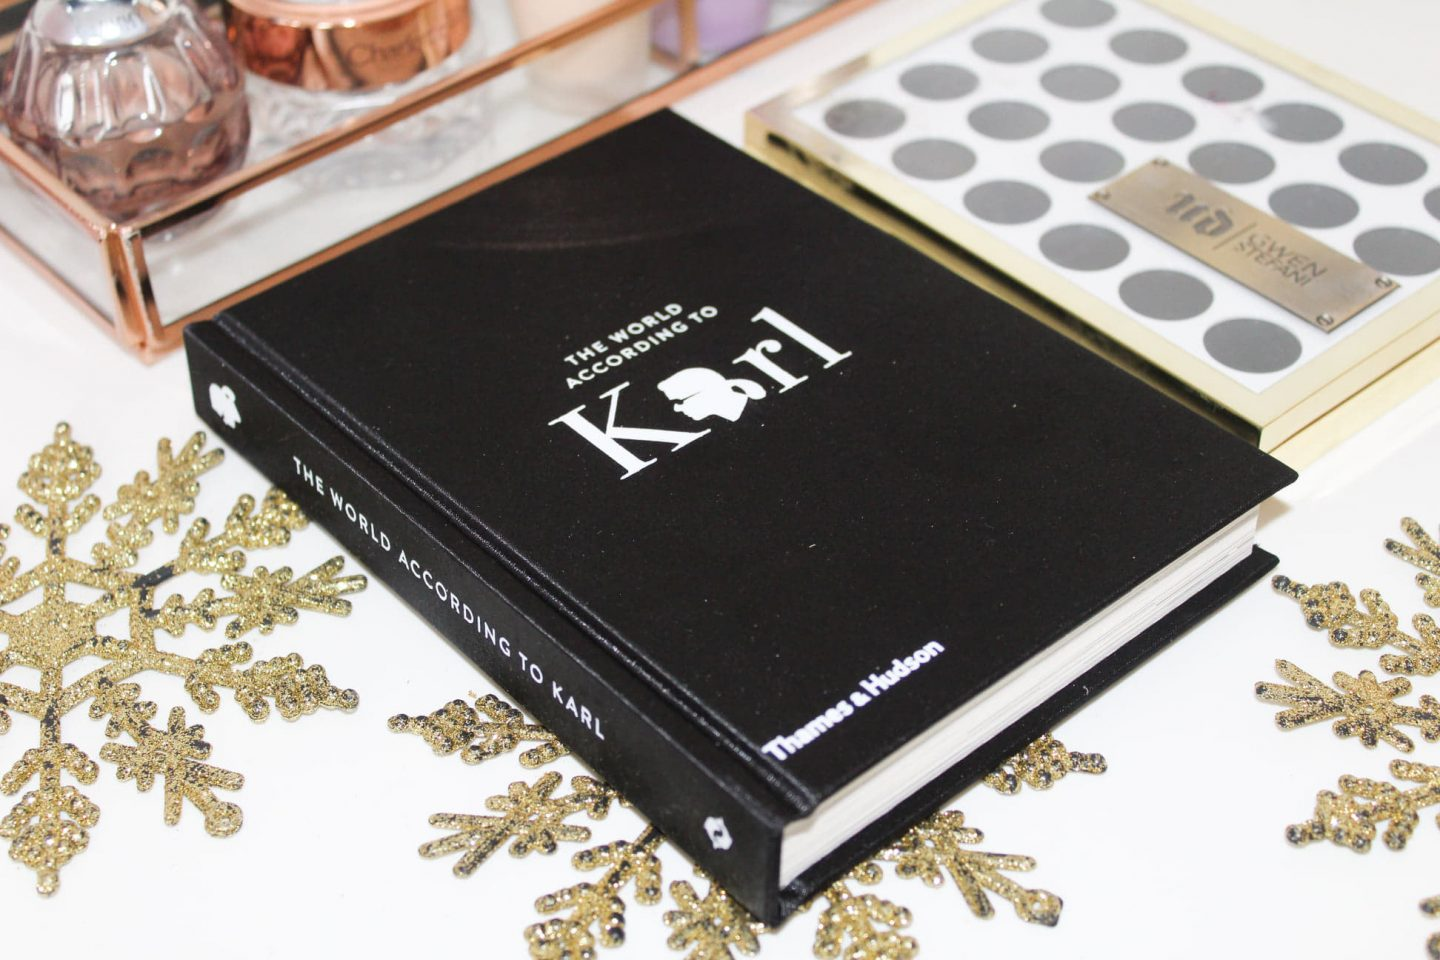 Christmas Gift Idea | The World According to Karl